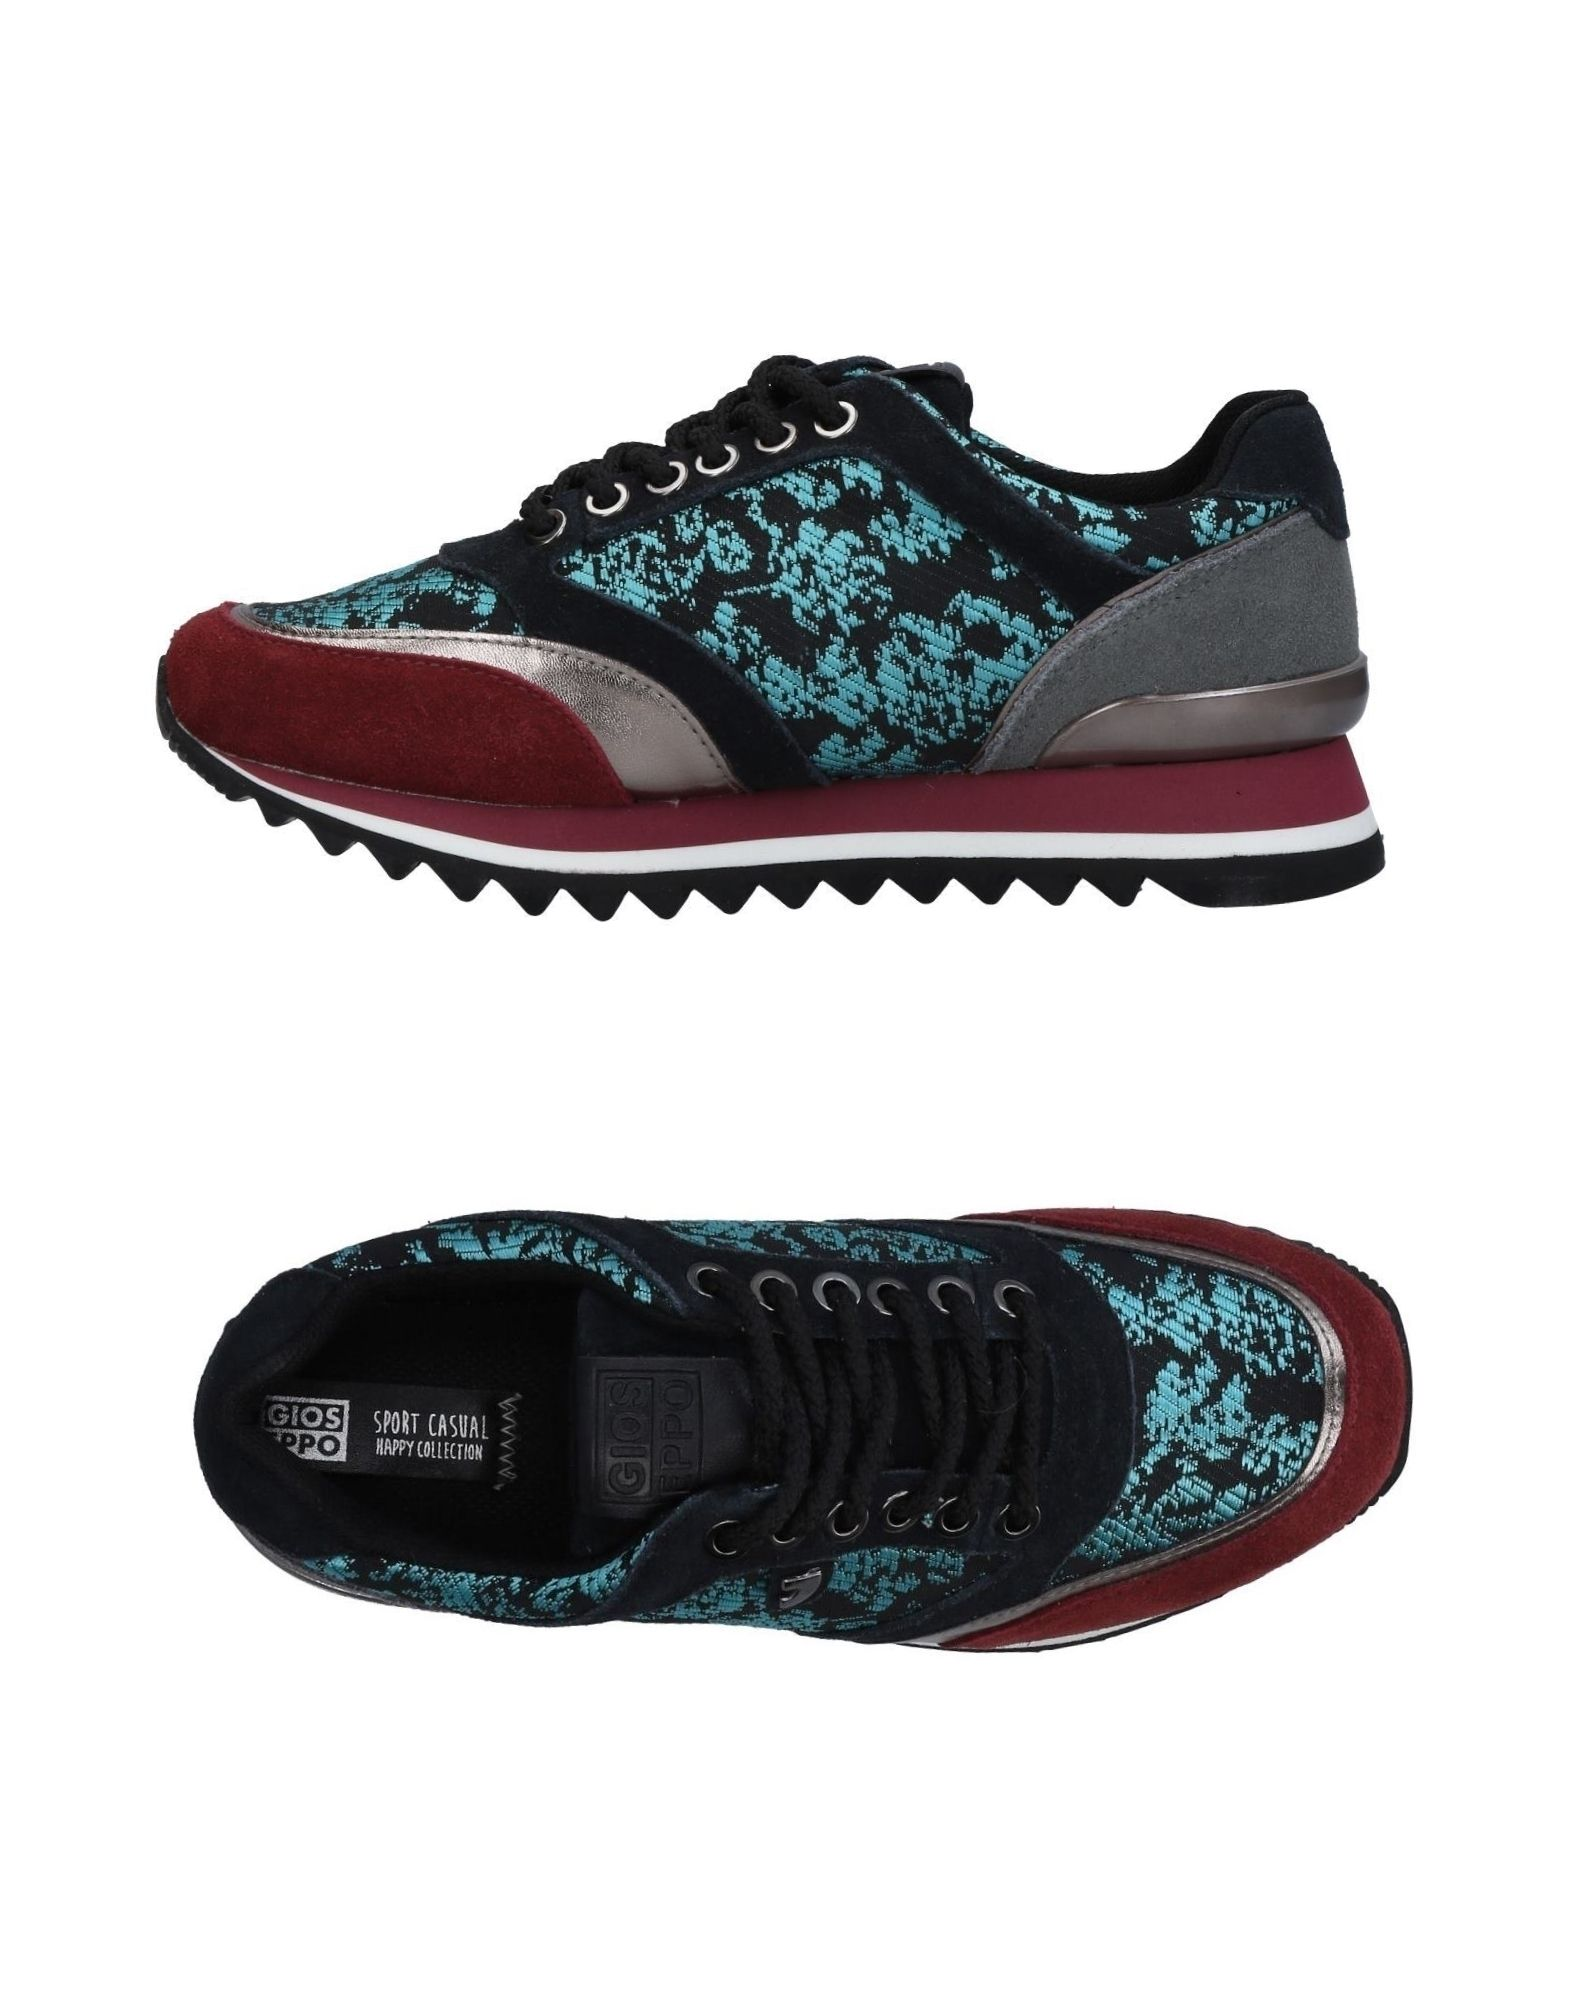 Baskets Gioseppo Femme - Baskets Gioseppo Turquoise Chaussures femme pas cher homme et femme